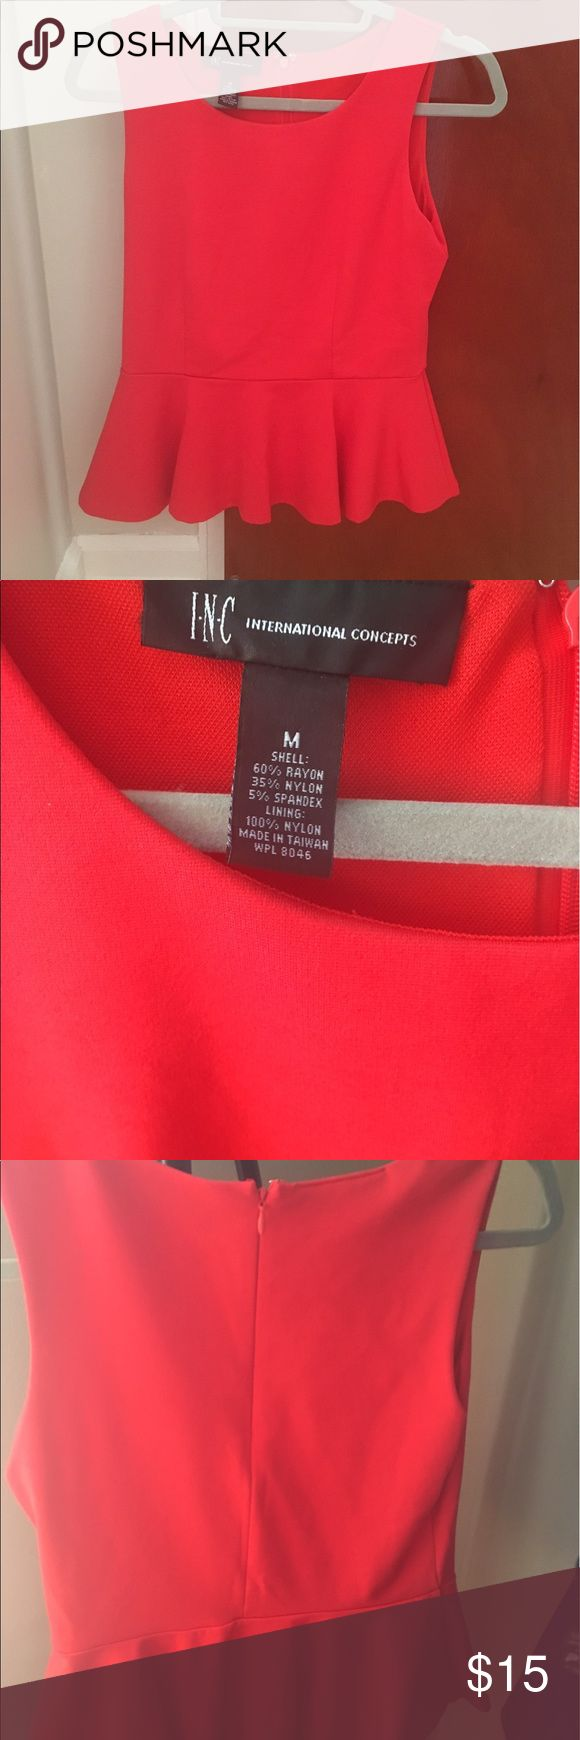 INC Concepts red peplum top Bright red peplum top. zipper back and thick stretchy material elevate the fit. Perfect condition- worn once. INC International Concepts Tops Blouses